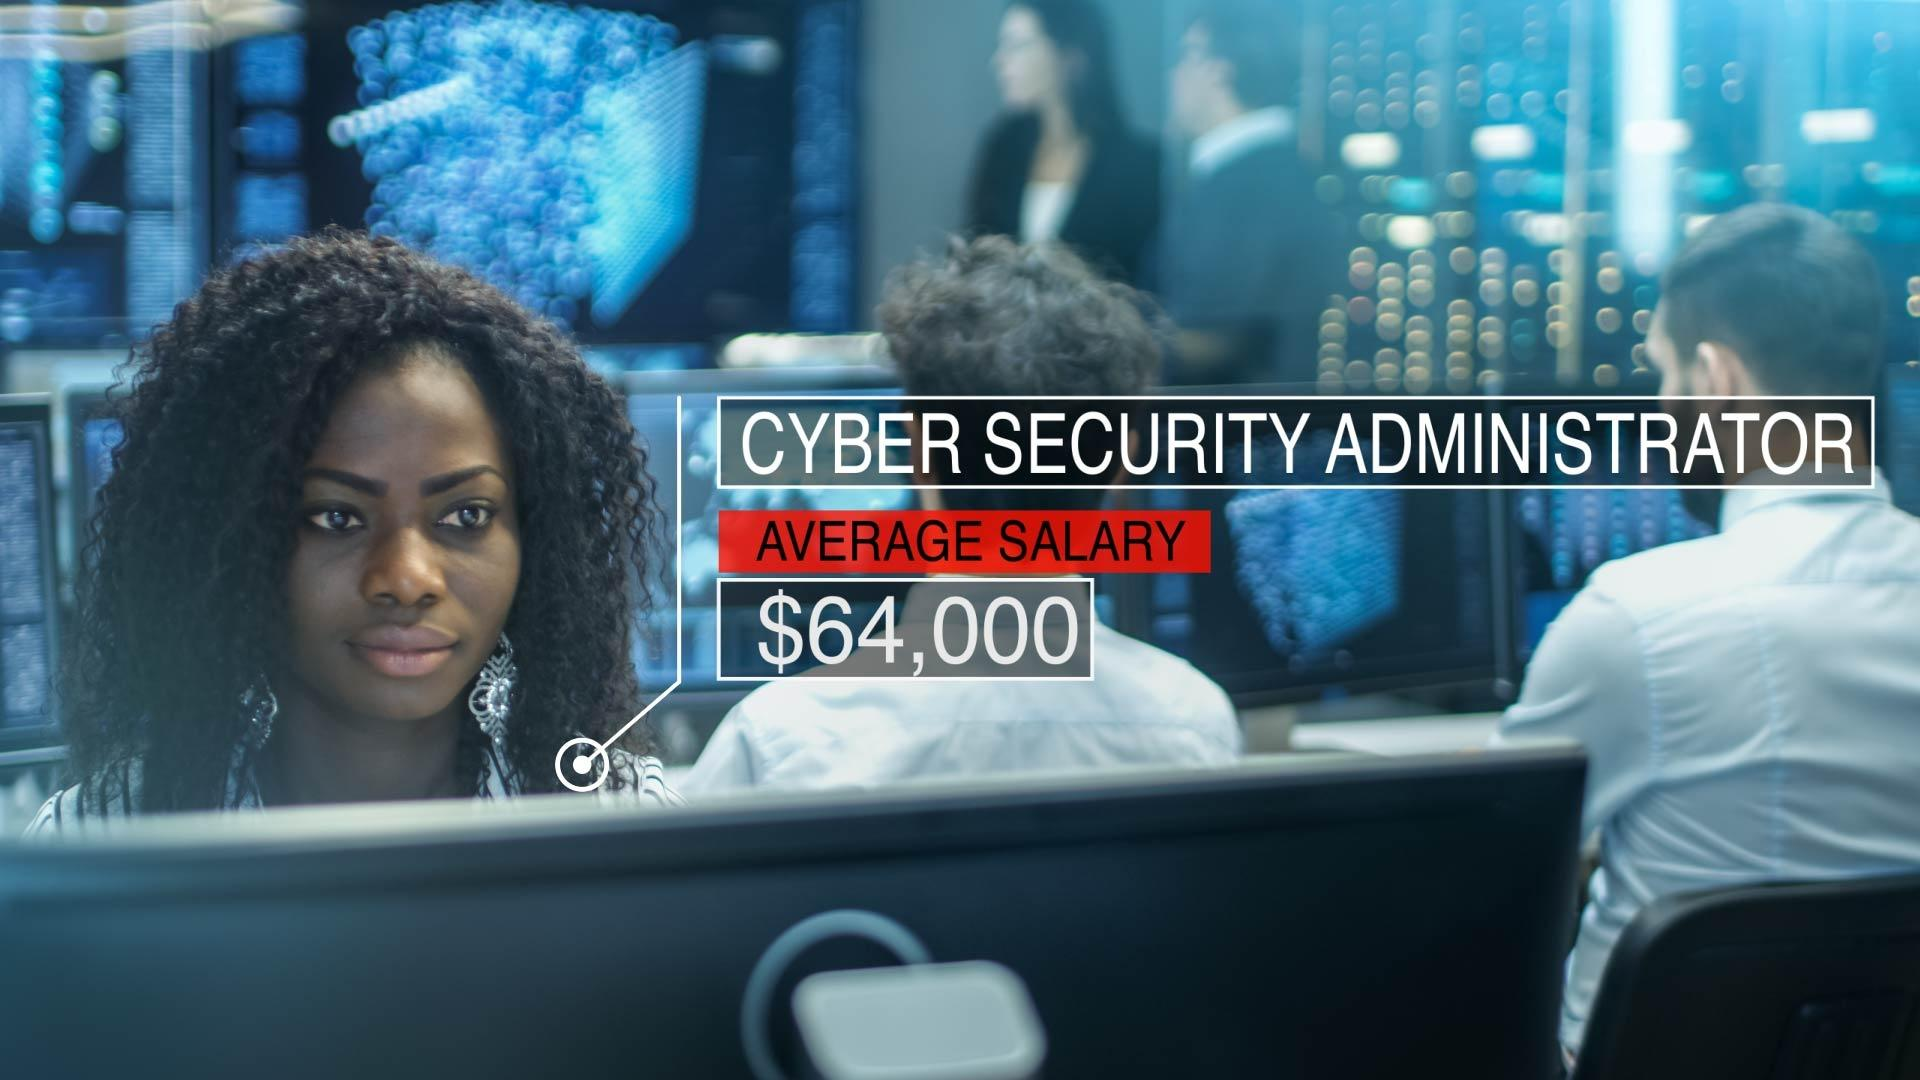 Cyber Security Adminstrator